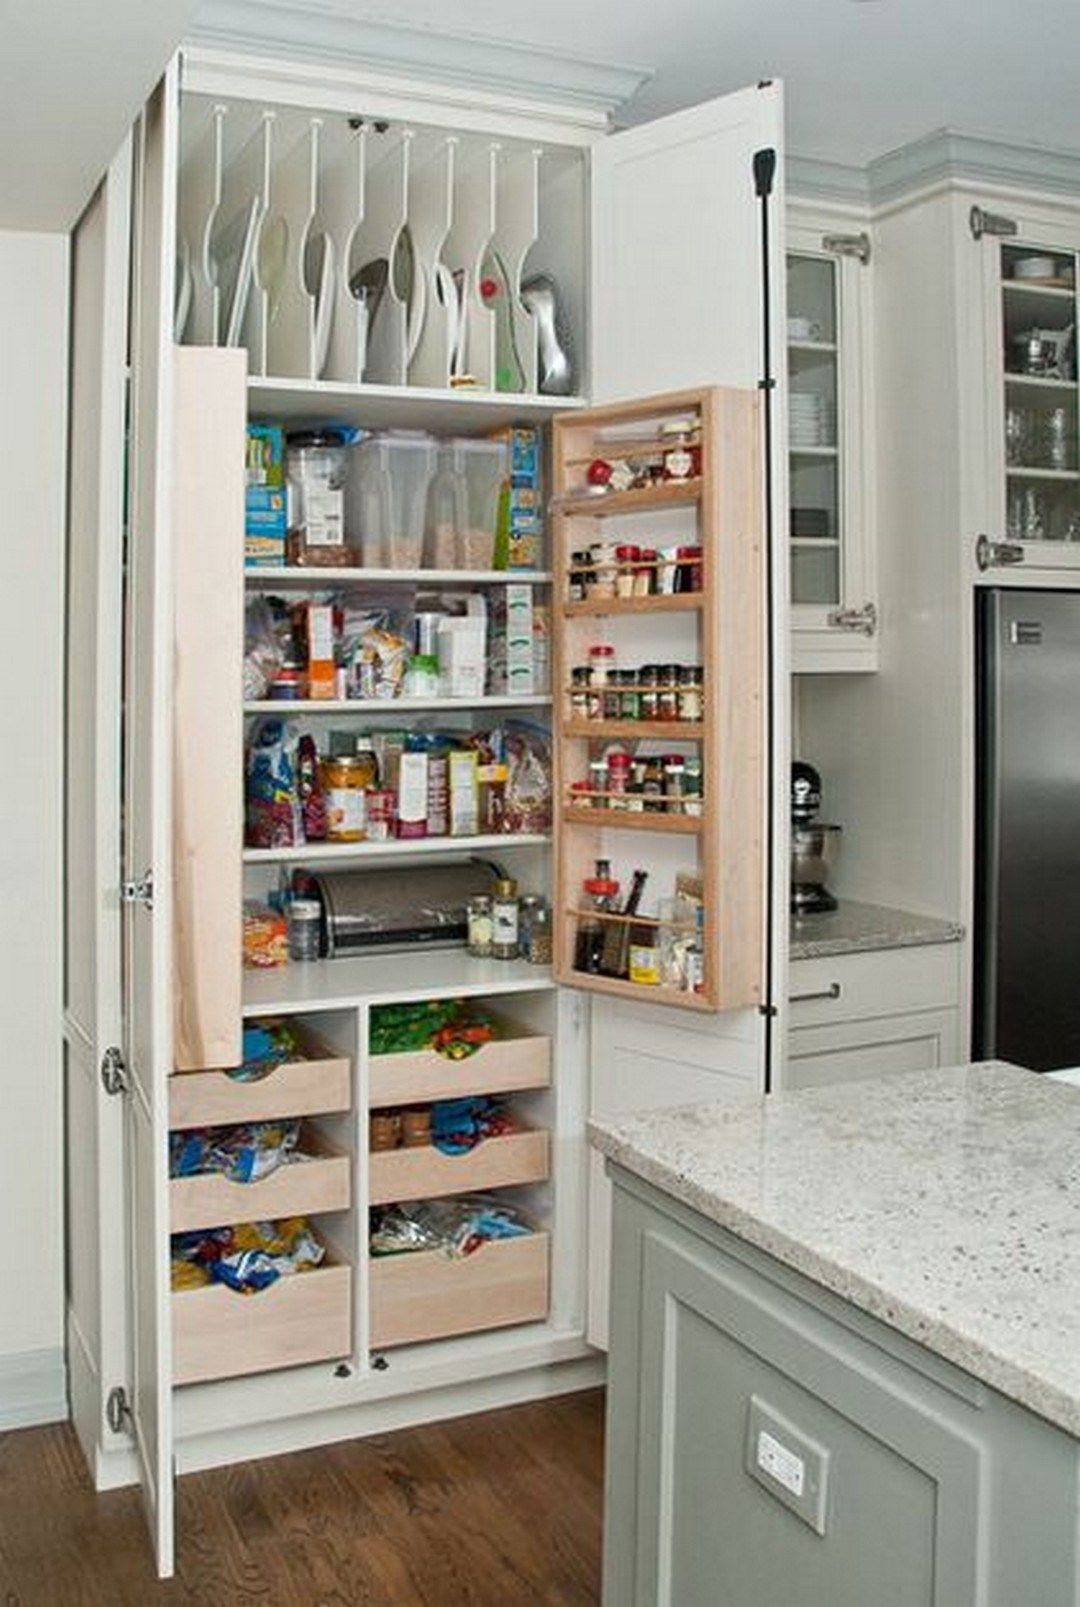 25 how to fit a small pantry in new kitchen 16 kitchen